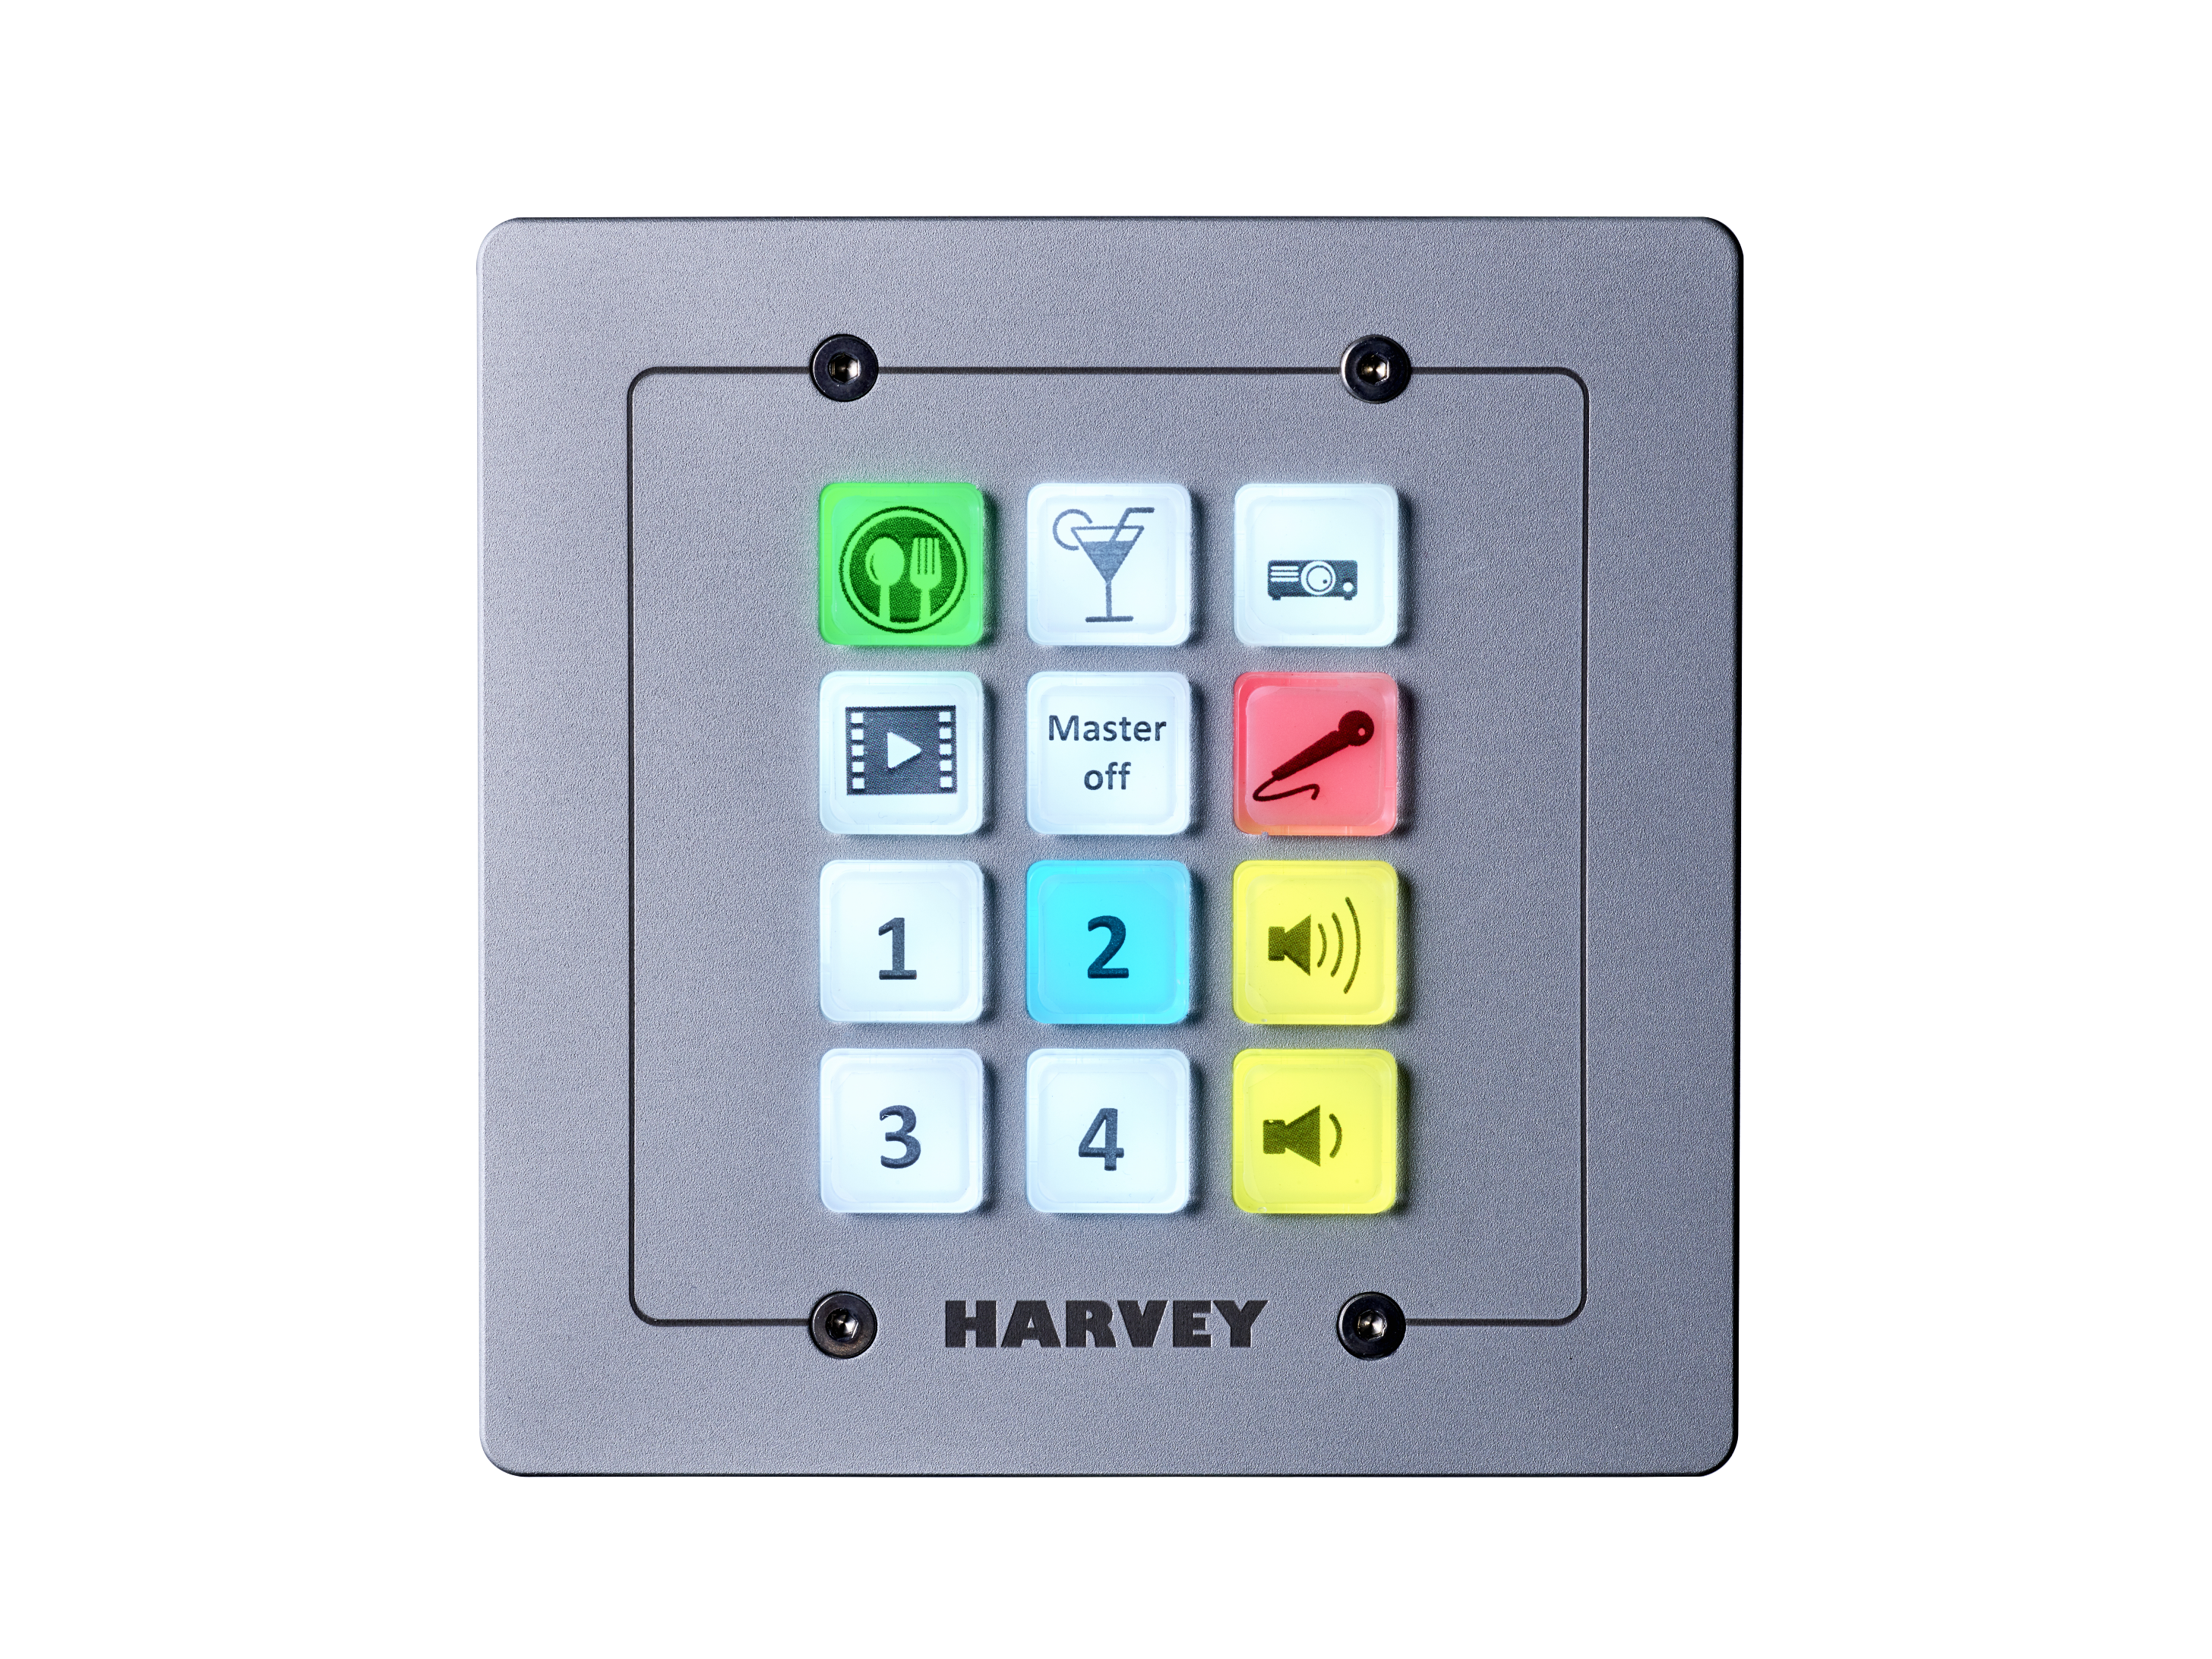 HARVEY Remote Control RC12 US-AL